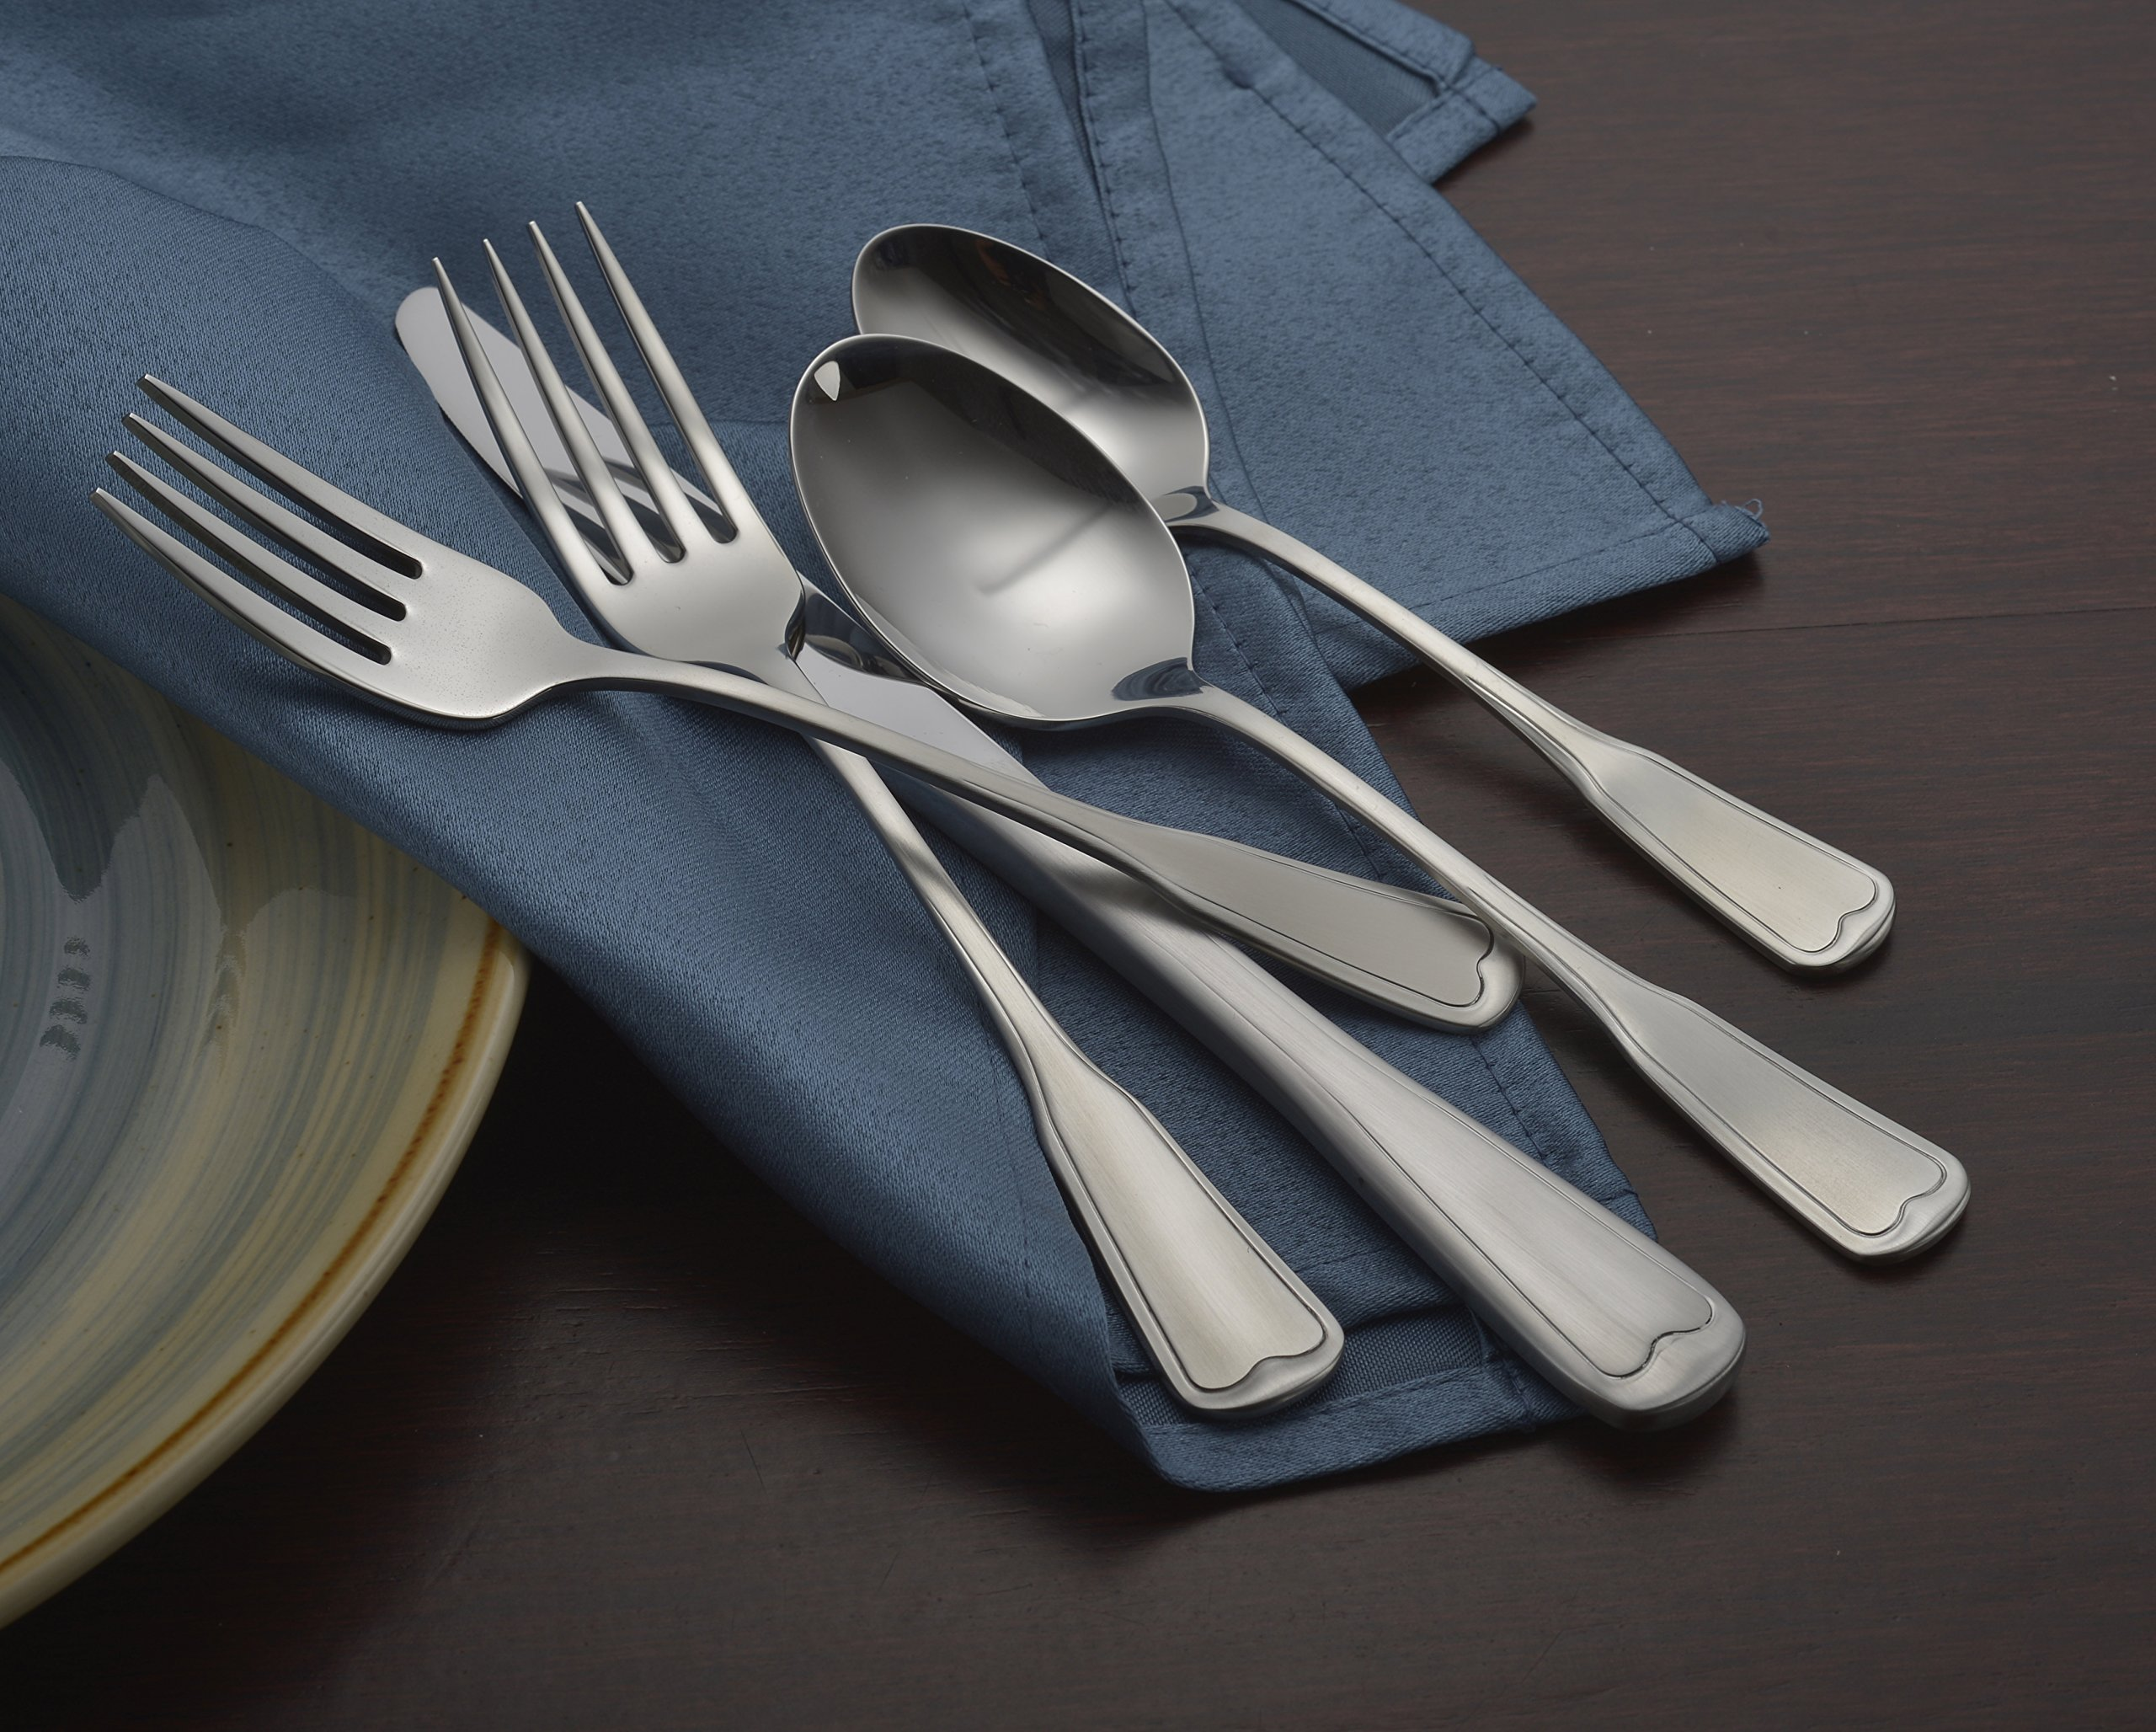 Liberty Tabletop Satin Richmond 20 Piece Flatware Set service for 4 stainless steel 18/10 Made in USA by Liberty Tabletop (Image #5)